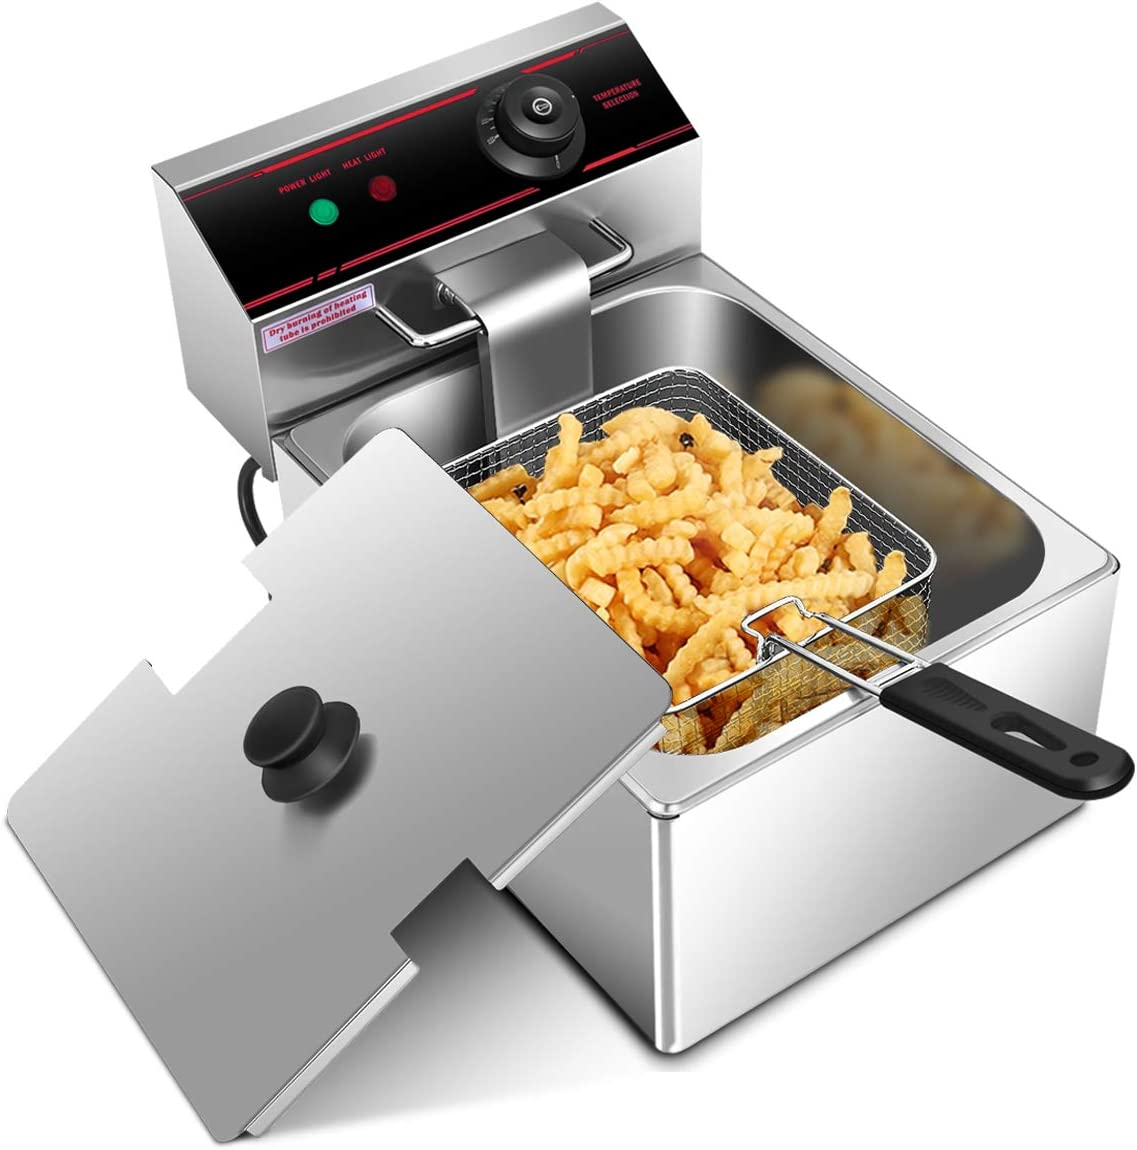 Safstar Professional Electric Deep Fryer, Stainless Steel Chicken Chips Fryer with Basket Scoop for Commercial Restaurant Countertop Family Food Cooking (Single Tank)